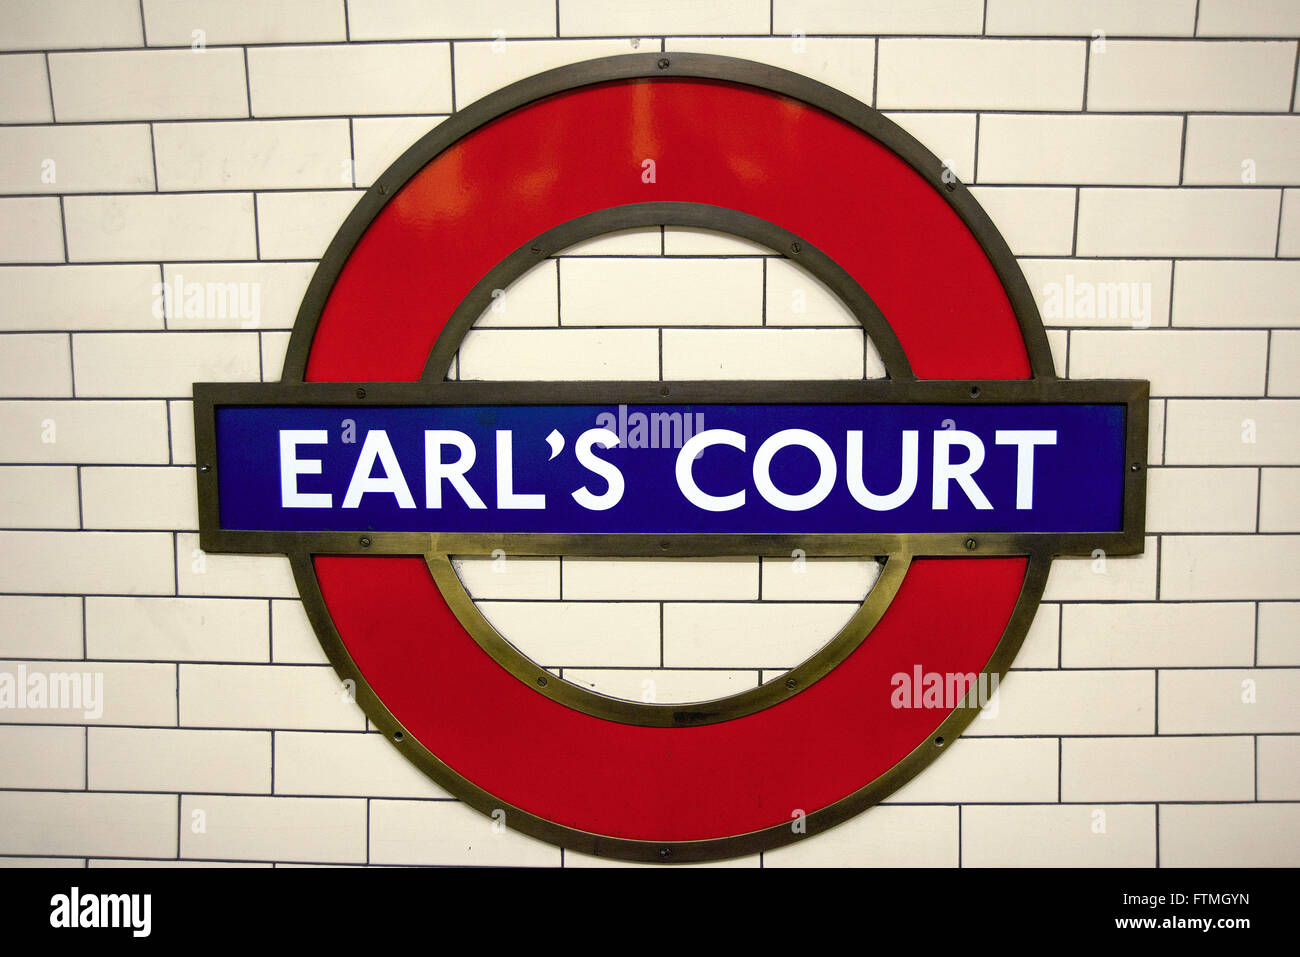 Season of Earl`s Court in the district of the same name - Stock Image